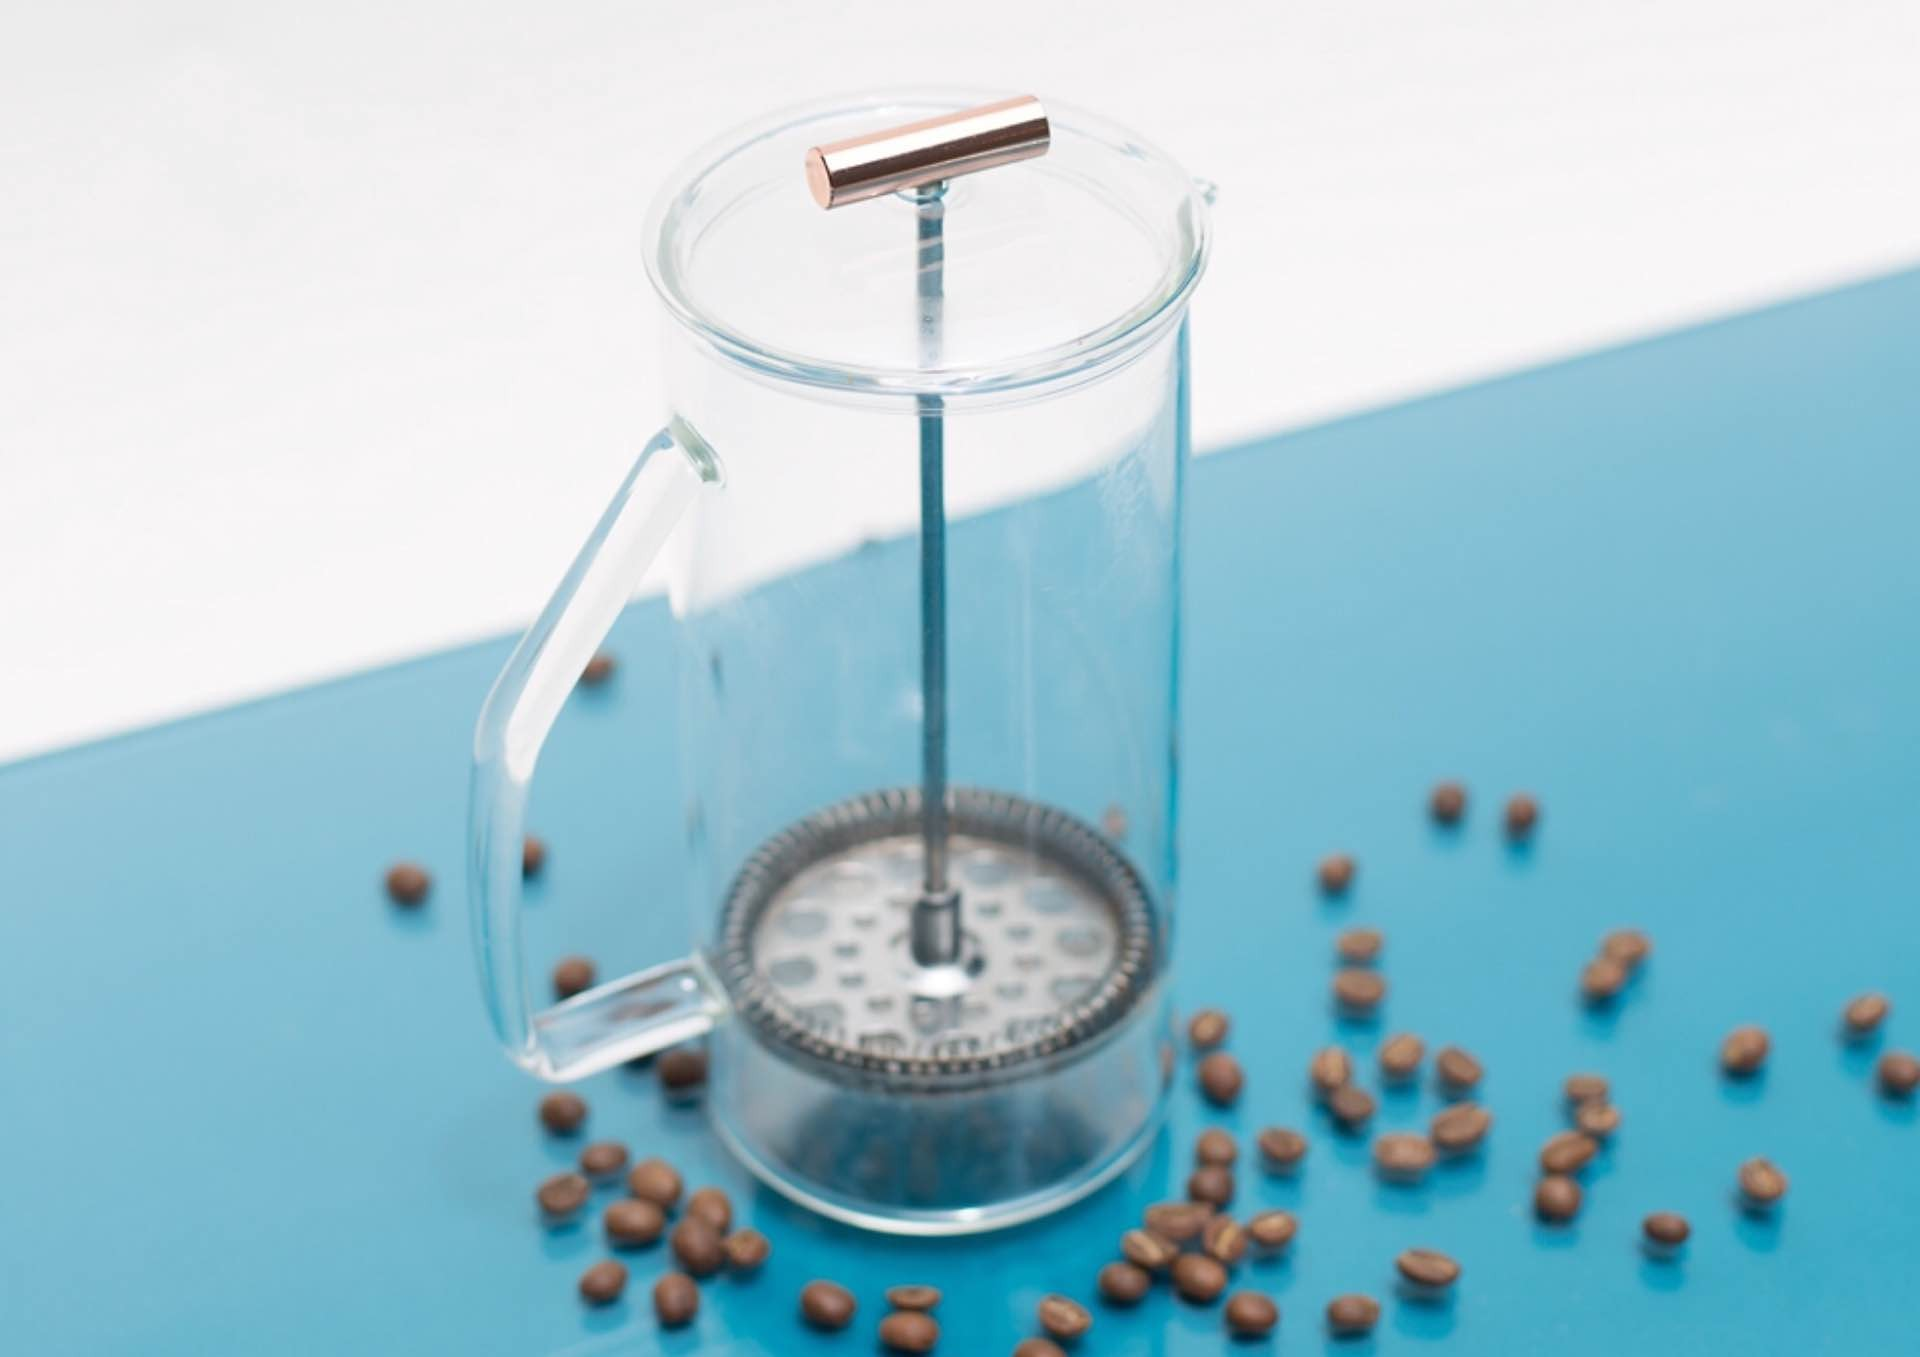 Yield Design's borosilicate glass French press. ($85)